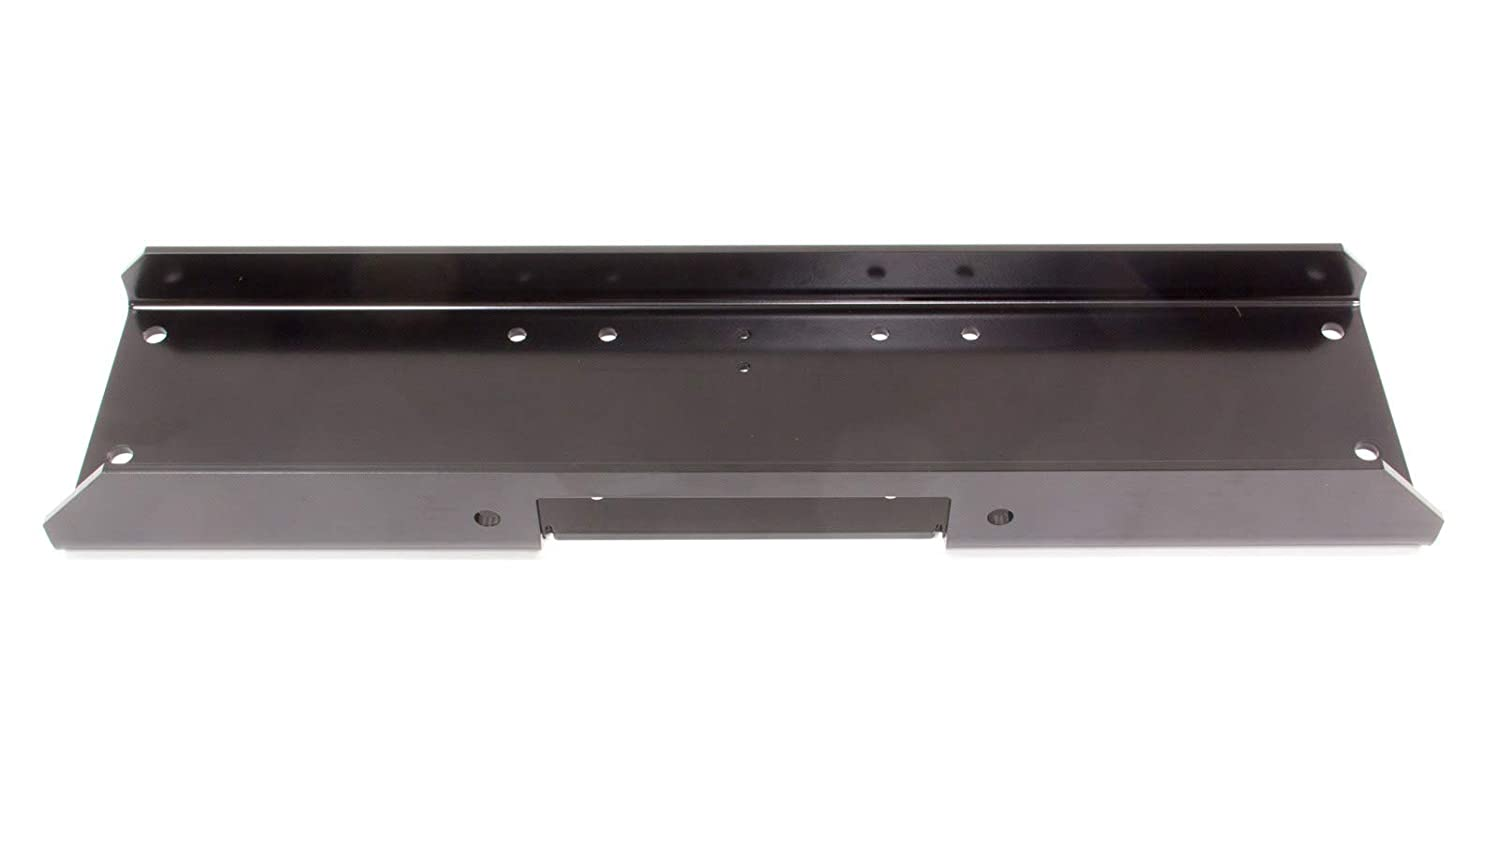 WARN 60368 Universal Flatbed Winch Mounting Plate